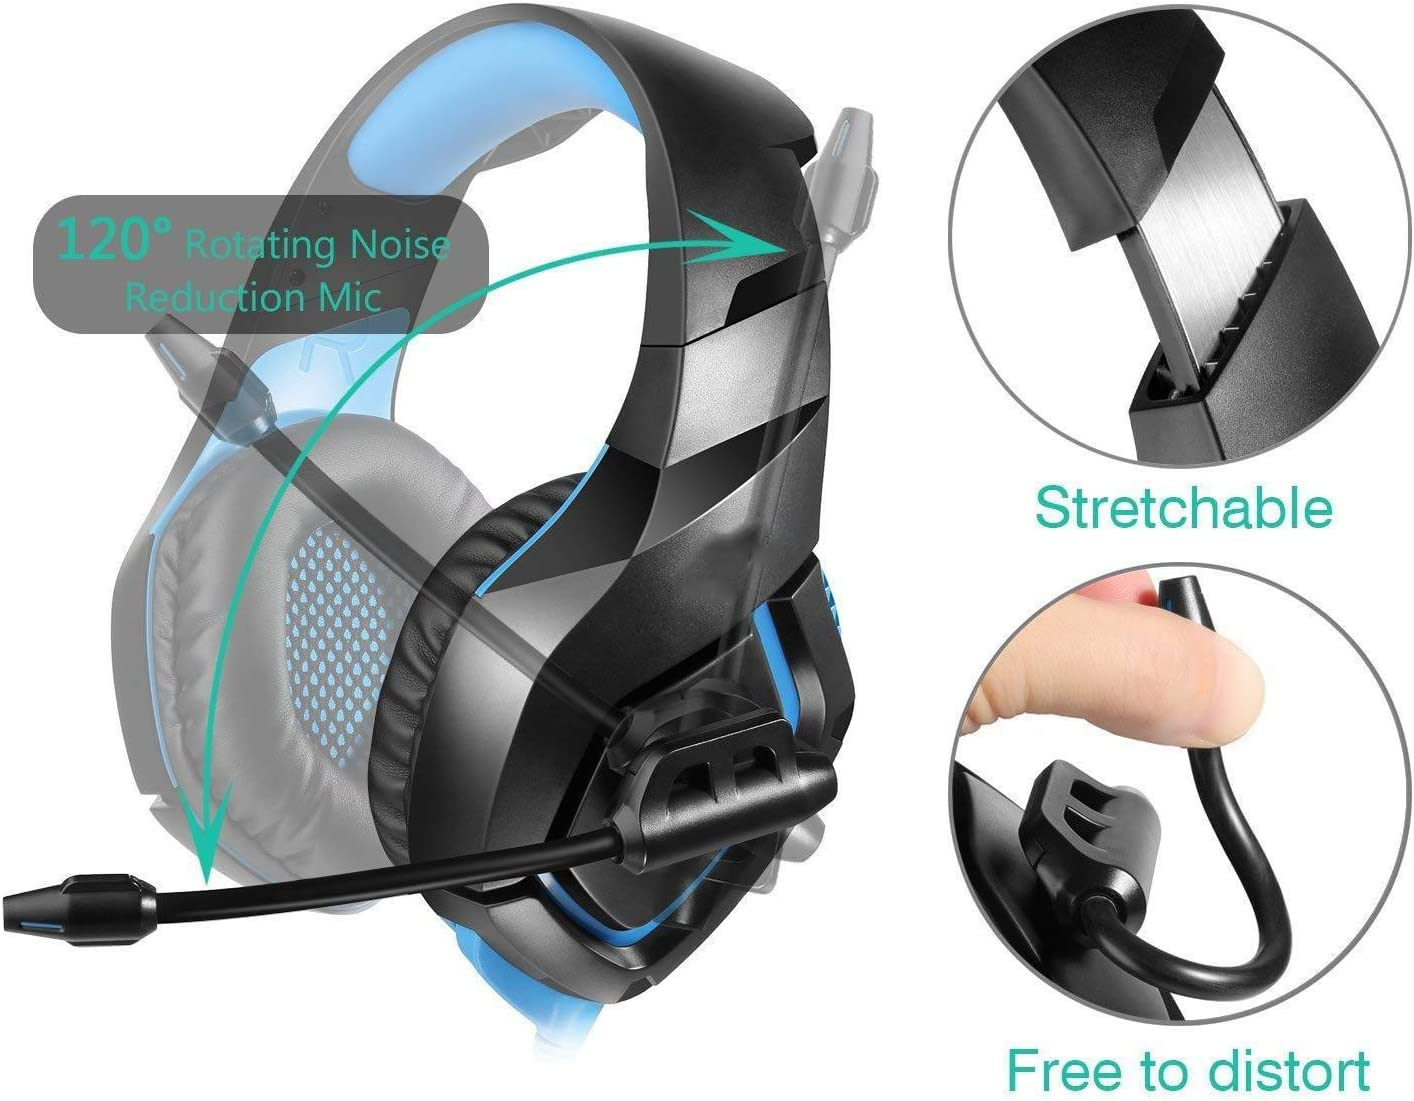 Soft Memory Earmuffs EAHKGmh Gaming Headset Headphones Earphones Wired Headset for PS4 Color : Black Blue Noise Cancelling Over Ear Headphones with Mic